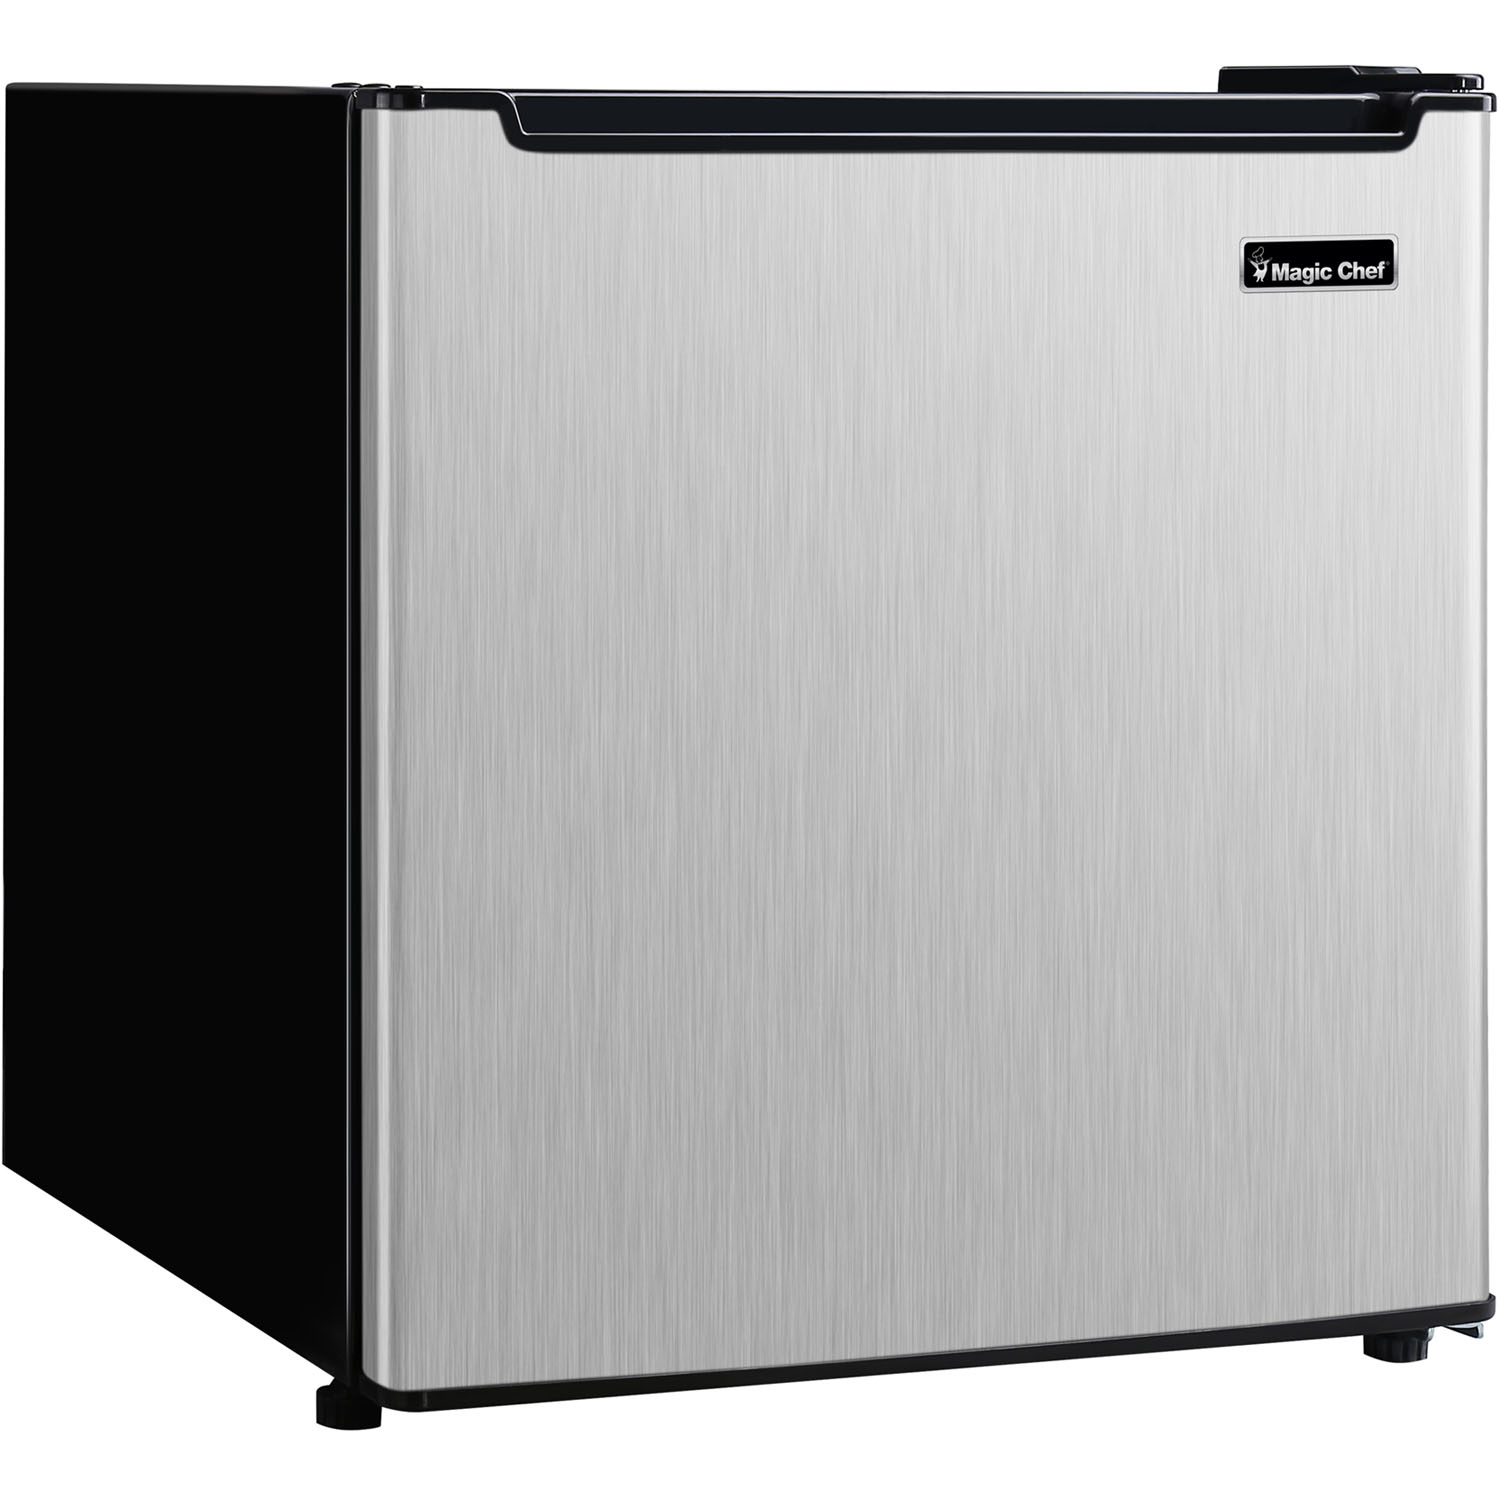 Magic Chef Energy Star 1 7 Cu Ft Mini Fridge Stainless Steel Door Walmart Com Walmart Com A wide variety of magic chef refrigerator options are available to you, such as 1 year. magic chef energy star 1 7 cu ft mini fridge stainless steel door